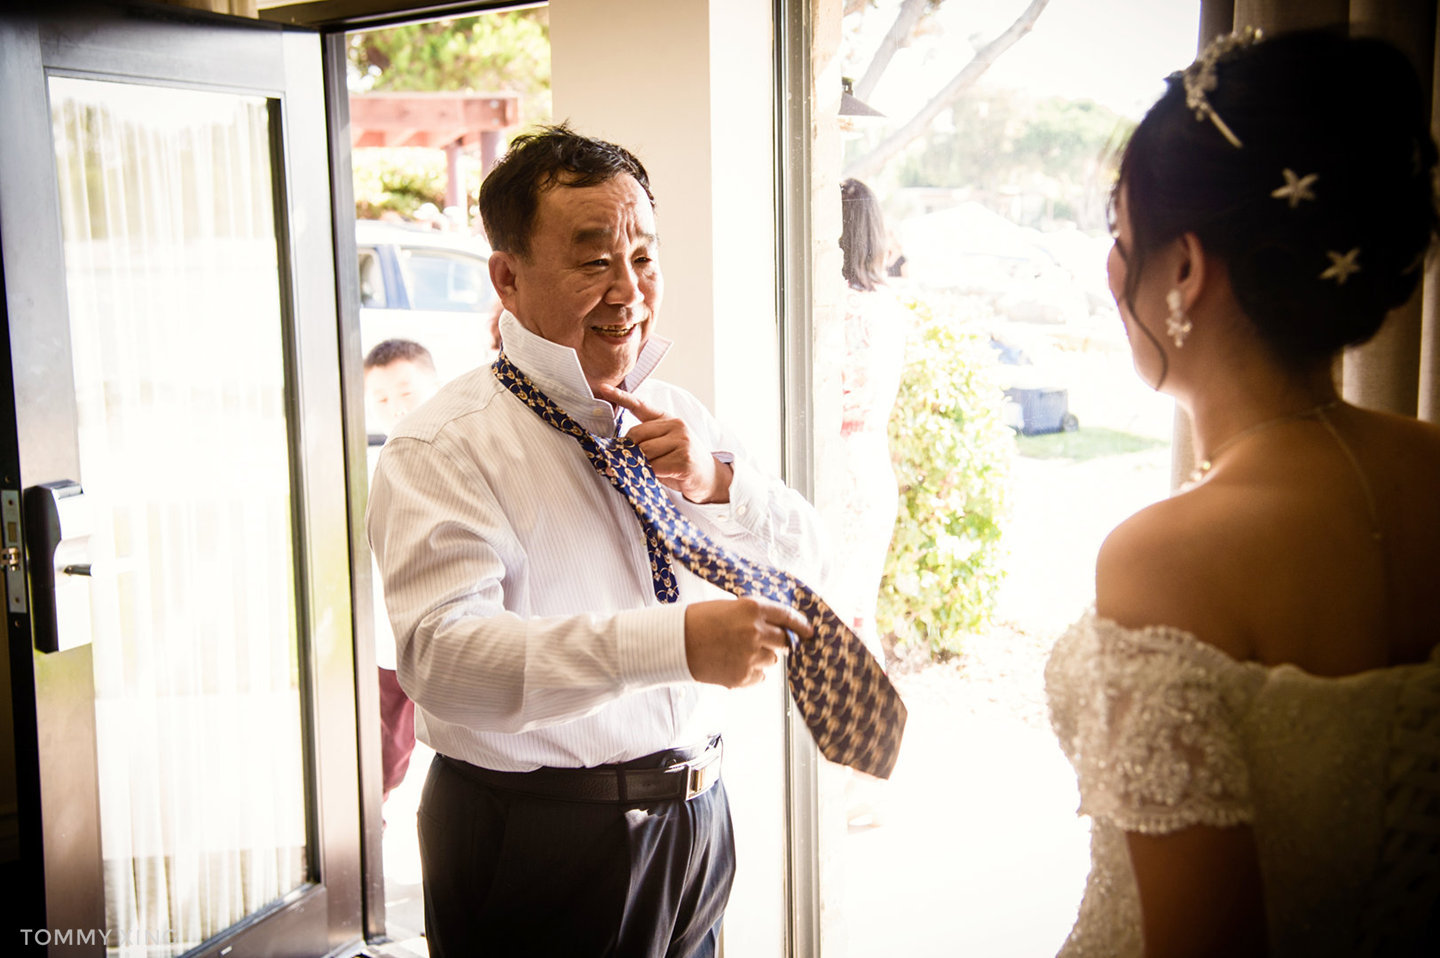 Paradise Point Resort Wedding Xiaolu & Bin San Diego 圣地亚哥婚礼摄影跟拍 Tommy Xing Photography 洛杉矶婚礼婚纱照摄影师 040.jpg